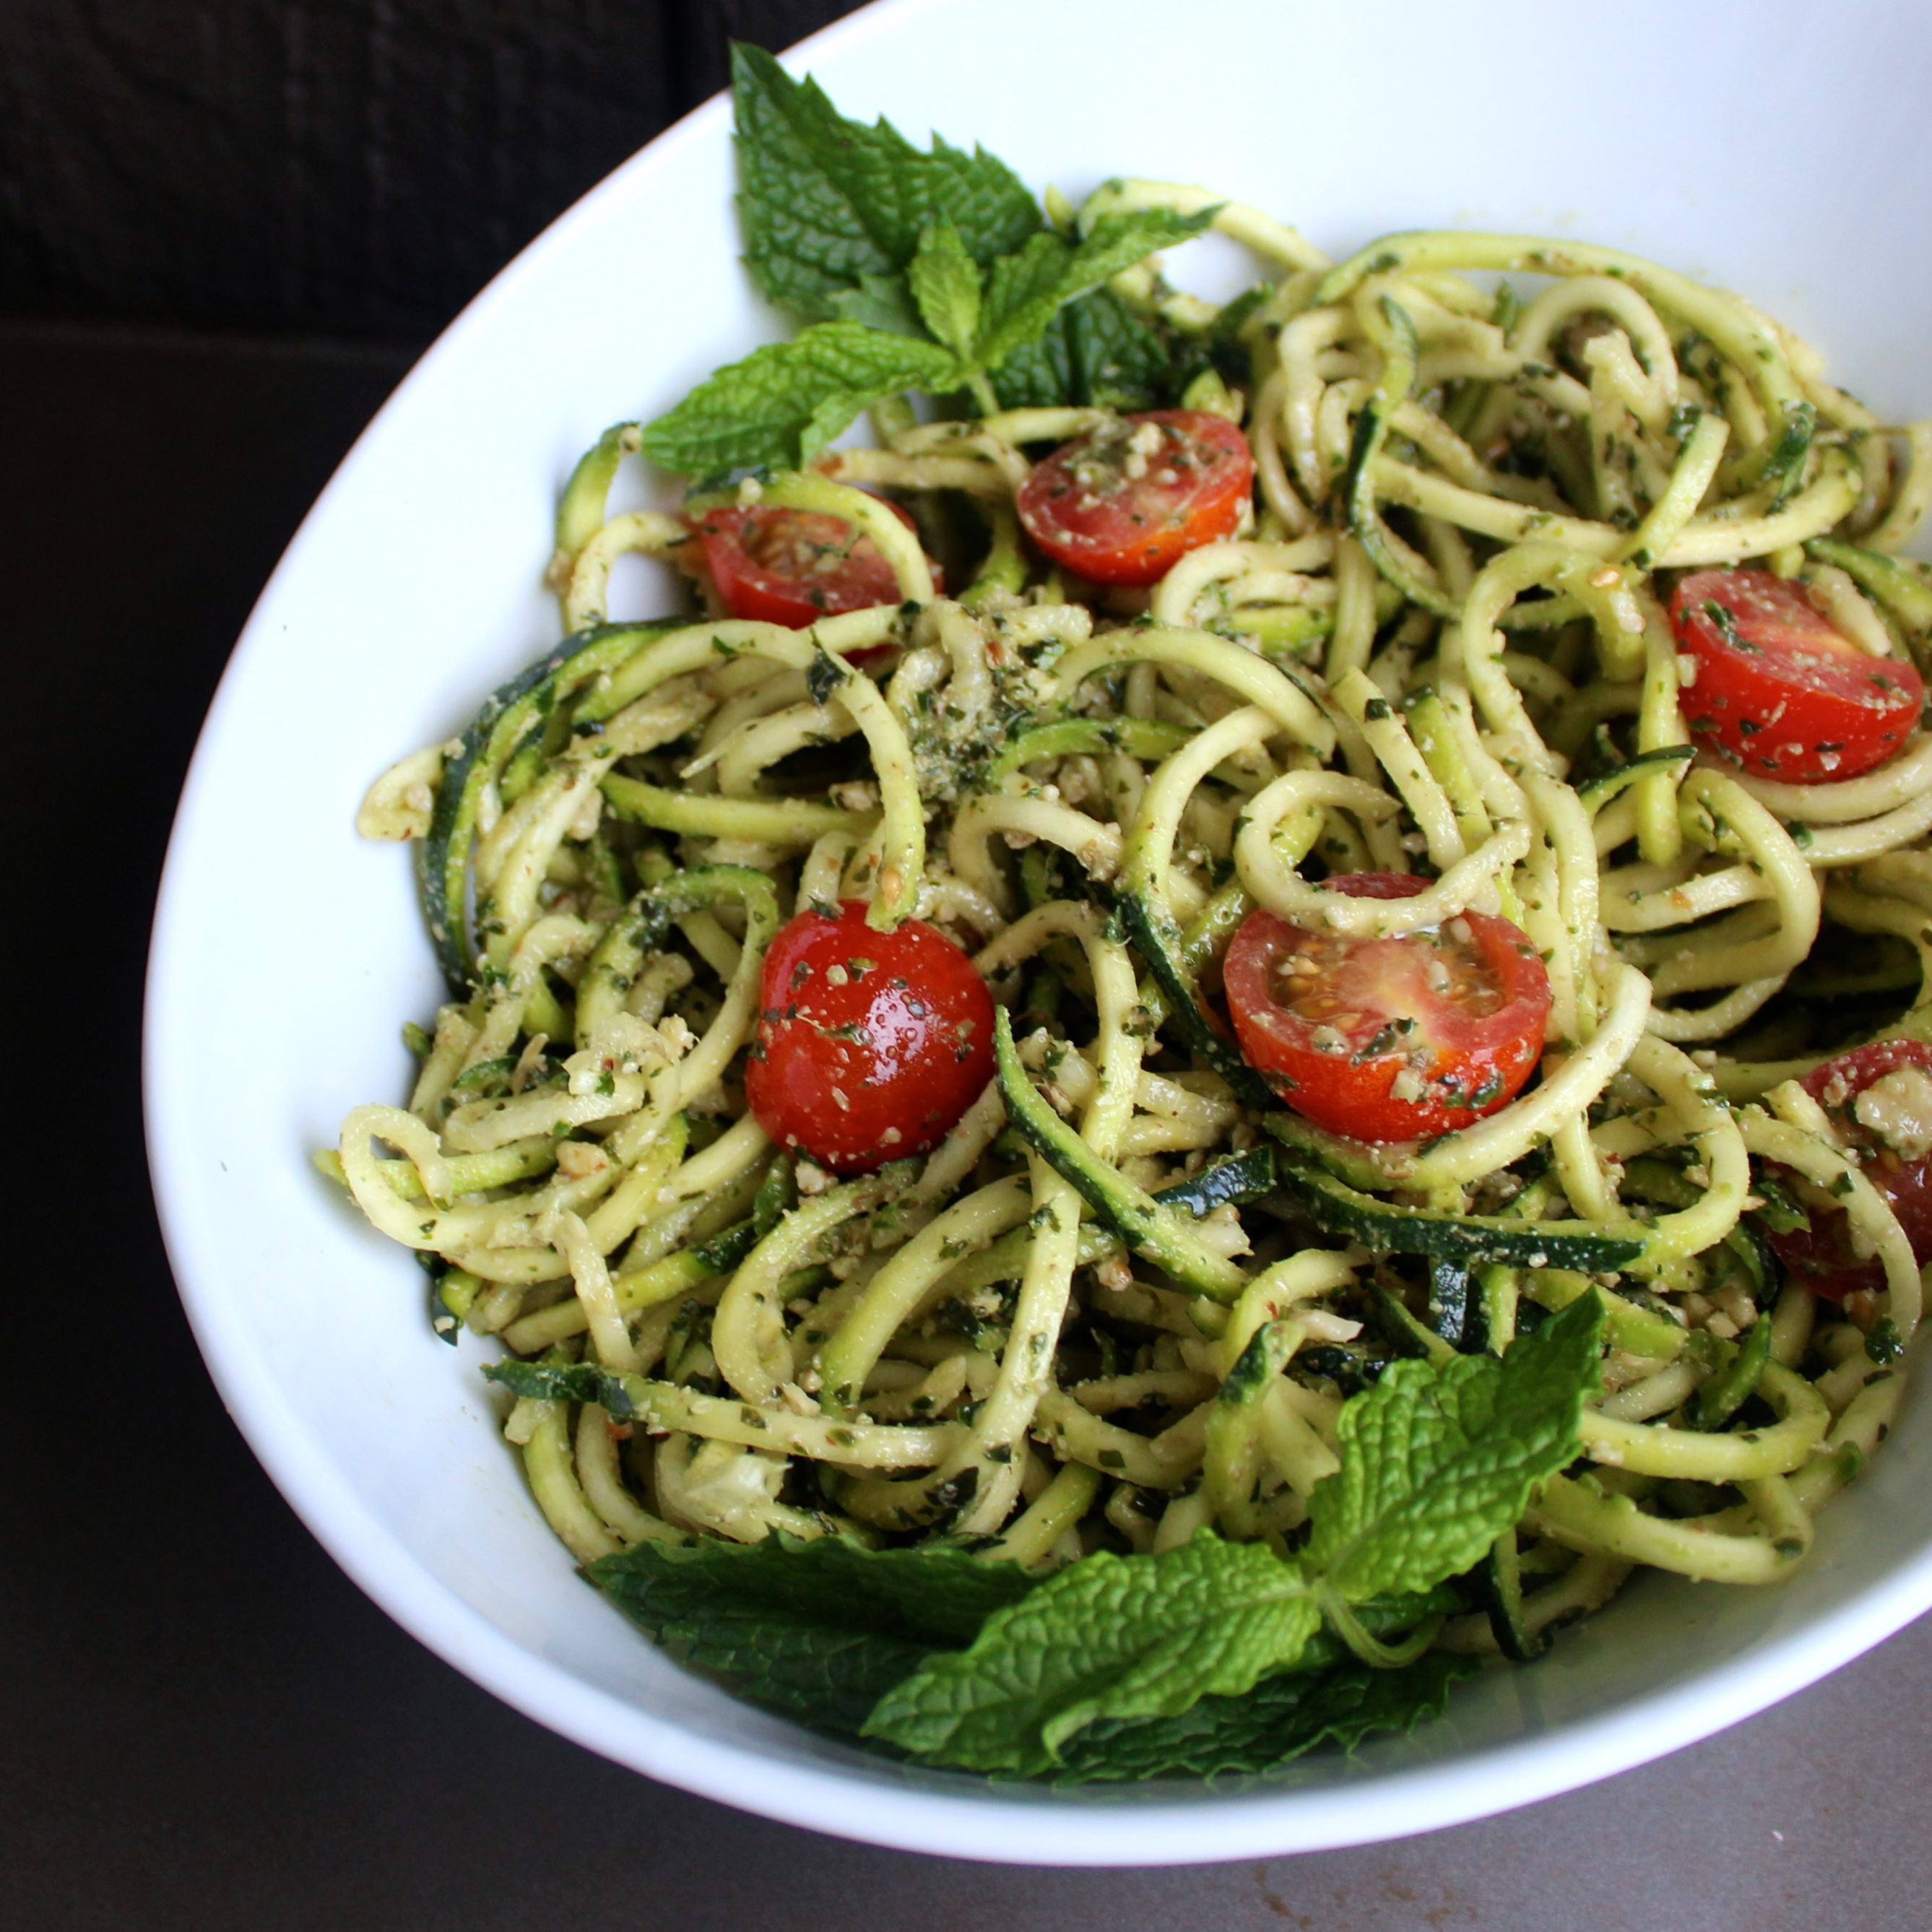 Inspiralized Zucchini Noodles with Mint Pesto